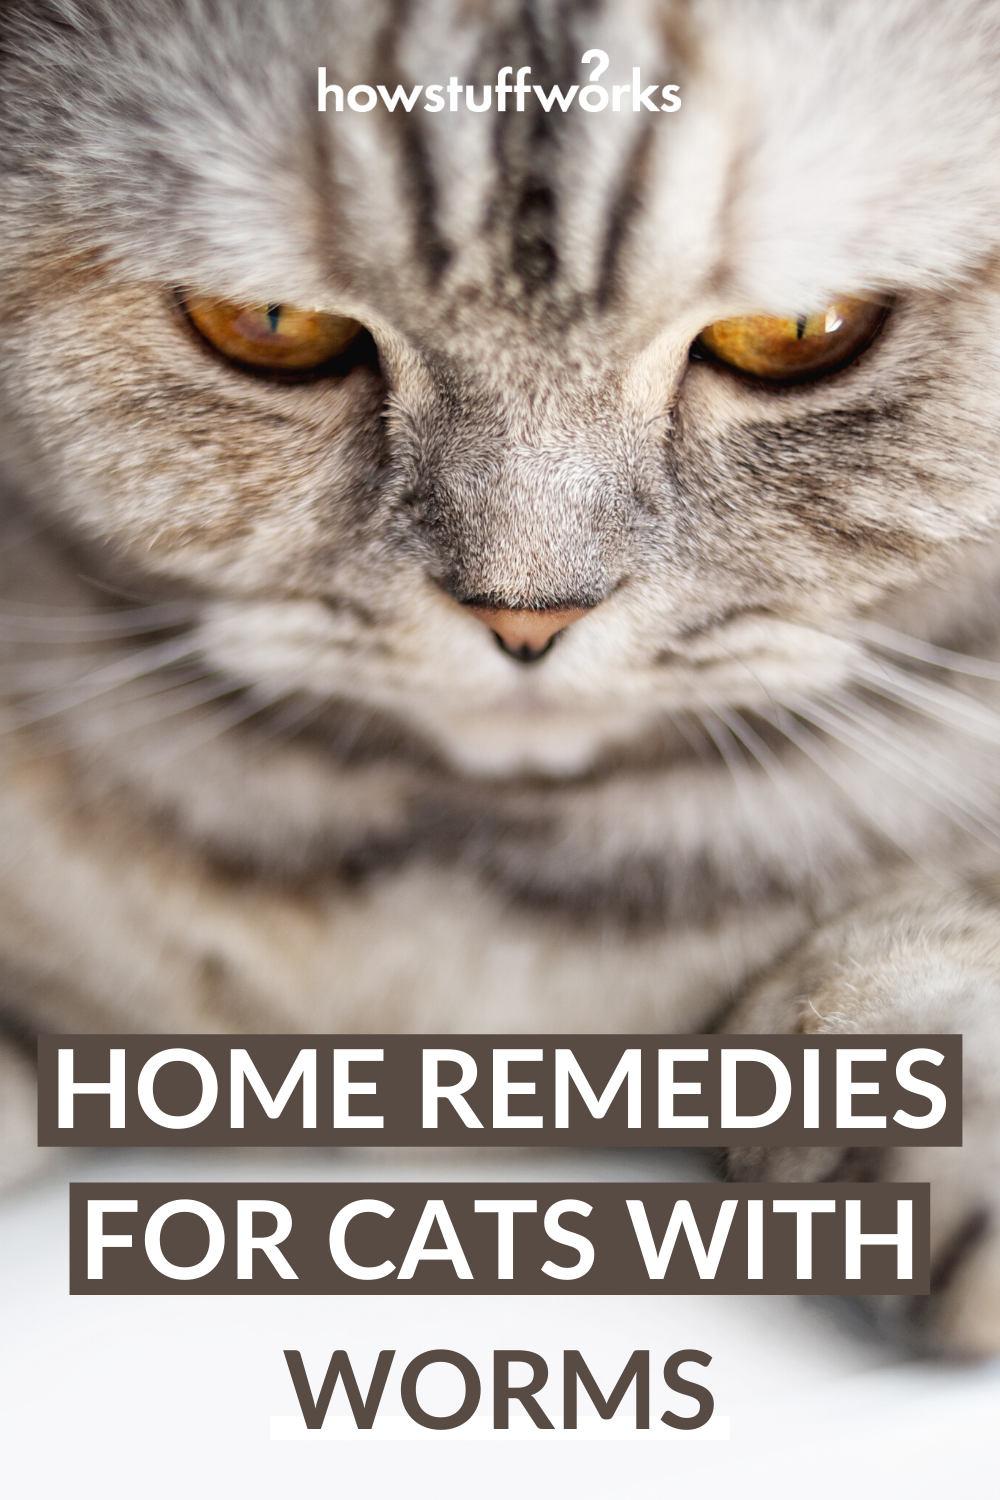 Home Remedies For Cats With Worms In 2020 Cat Worms Home Remedies Sick Kitten Cats